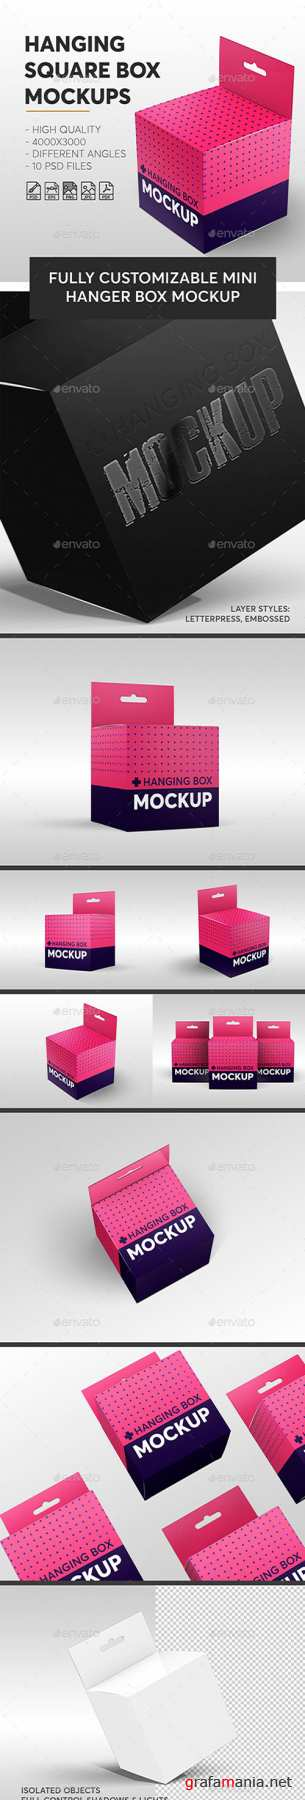 GR - Hanging Square Box Mockups V.1 | Miscellaneous 23078385